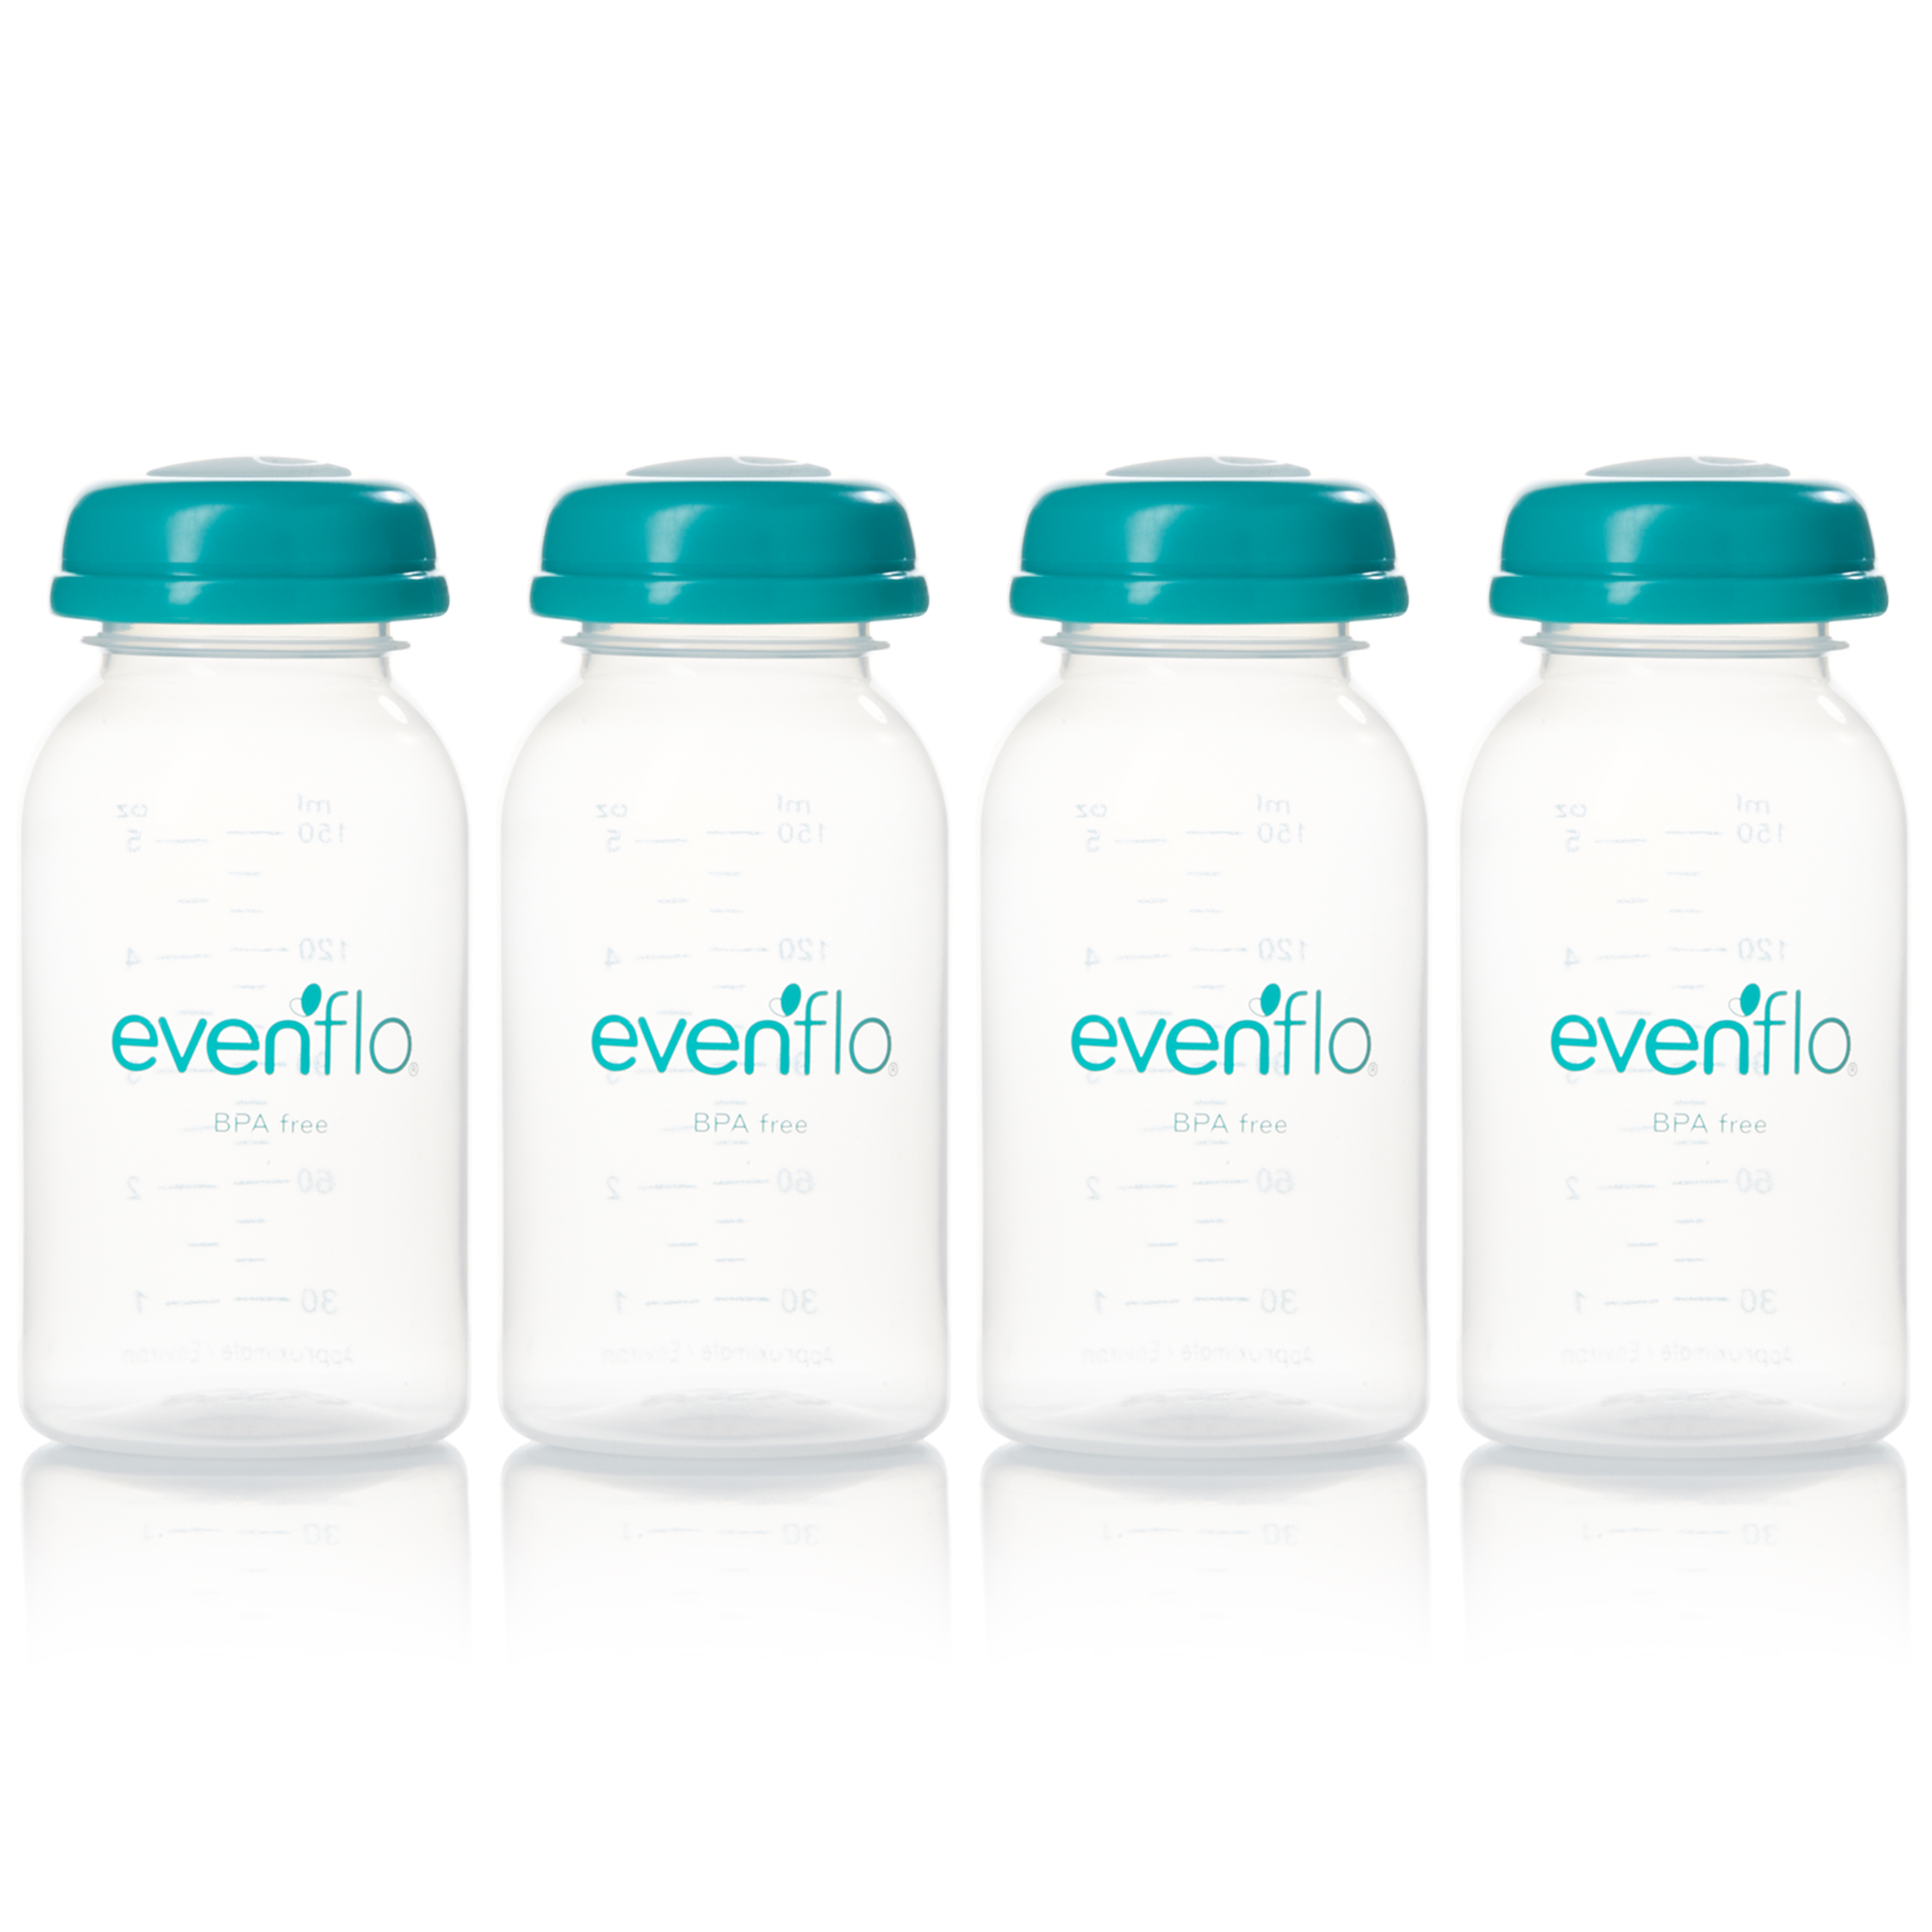 Evenflo Feeding BPA-Free Breast Milk Collection Bottles - 5oz, 4ct